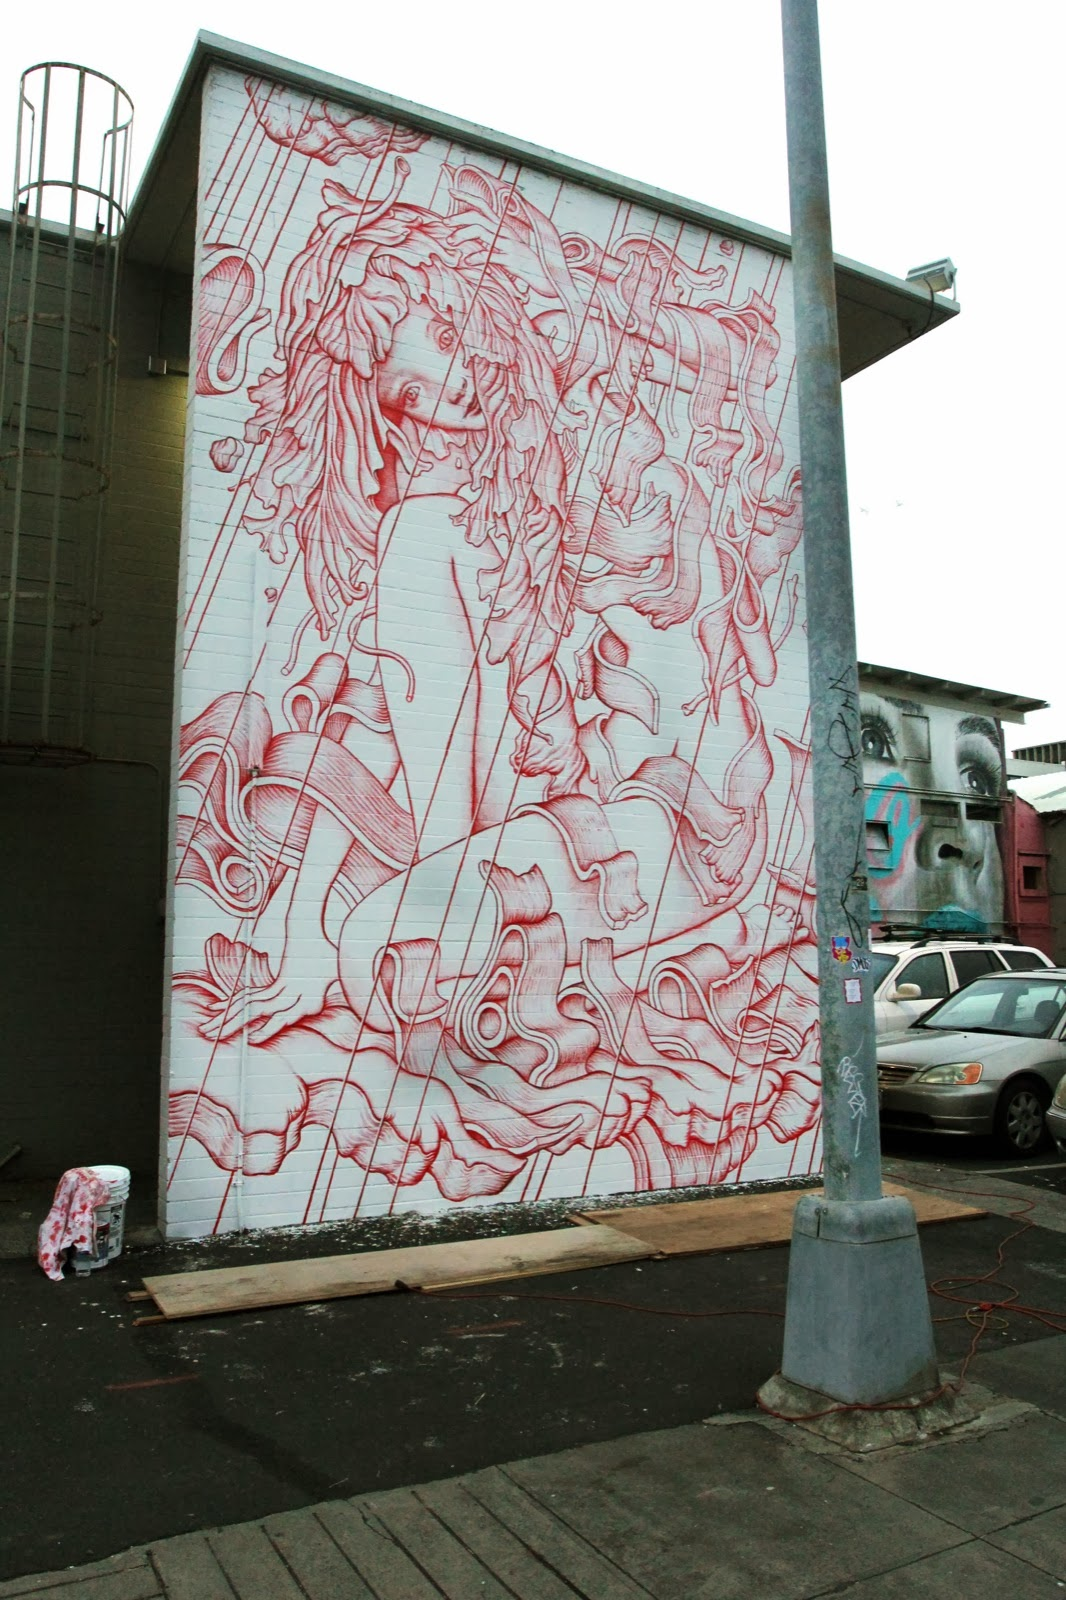 After 4 days of work, James Jean just completed this beautiful new piece for the POW! WOW! Hawaii 2014 Festival in Honolulu. 1